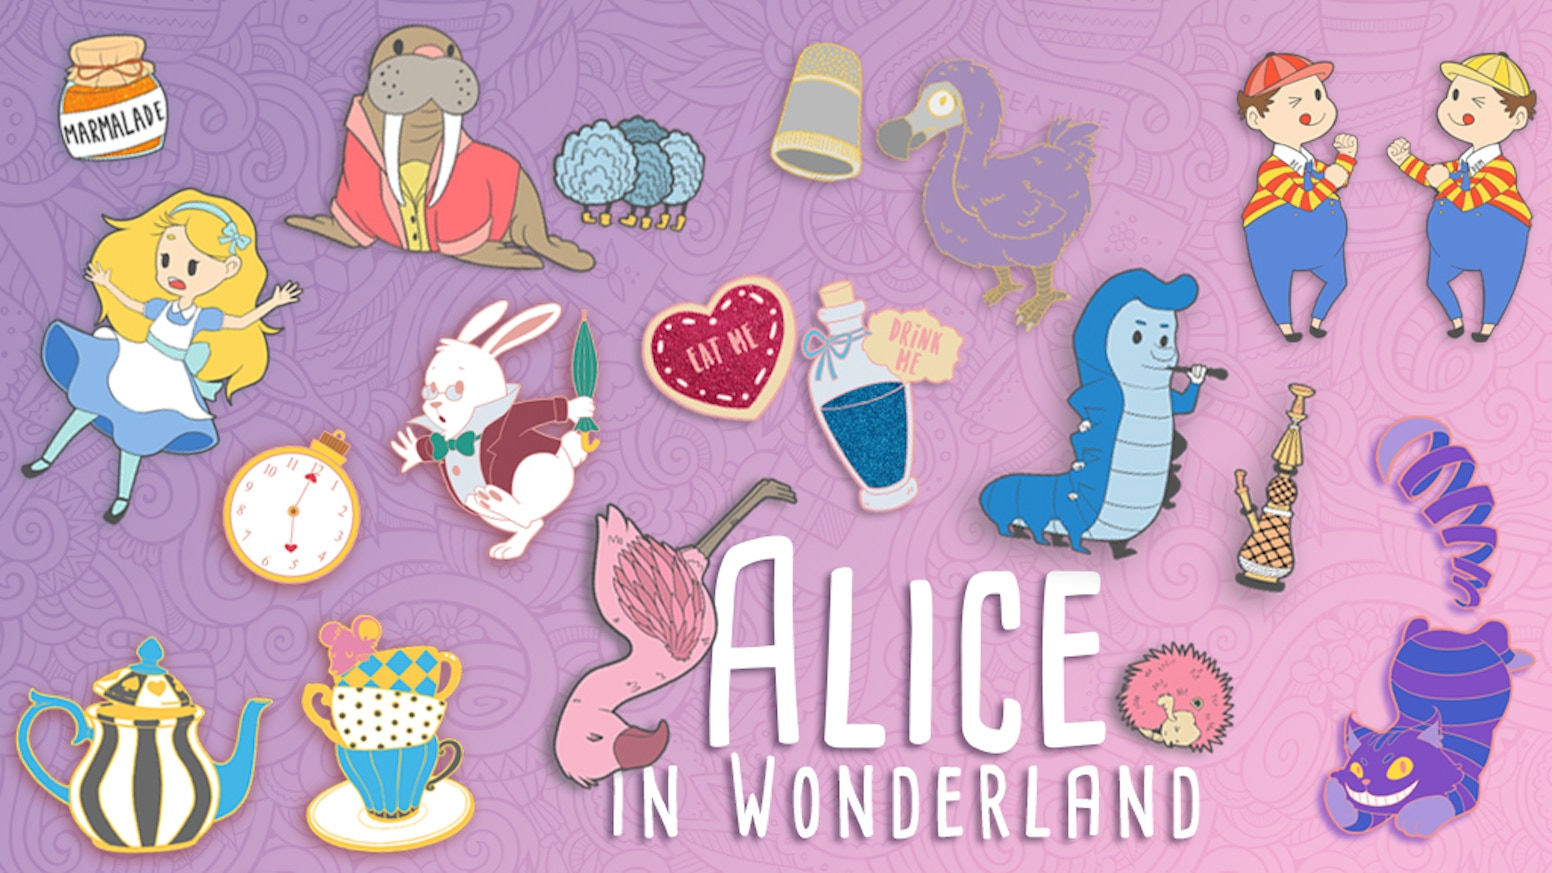 Bring the strange and eclectic characters of Lewis Carroll's Alice in Wonderland with you on your own wacky adventures!